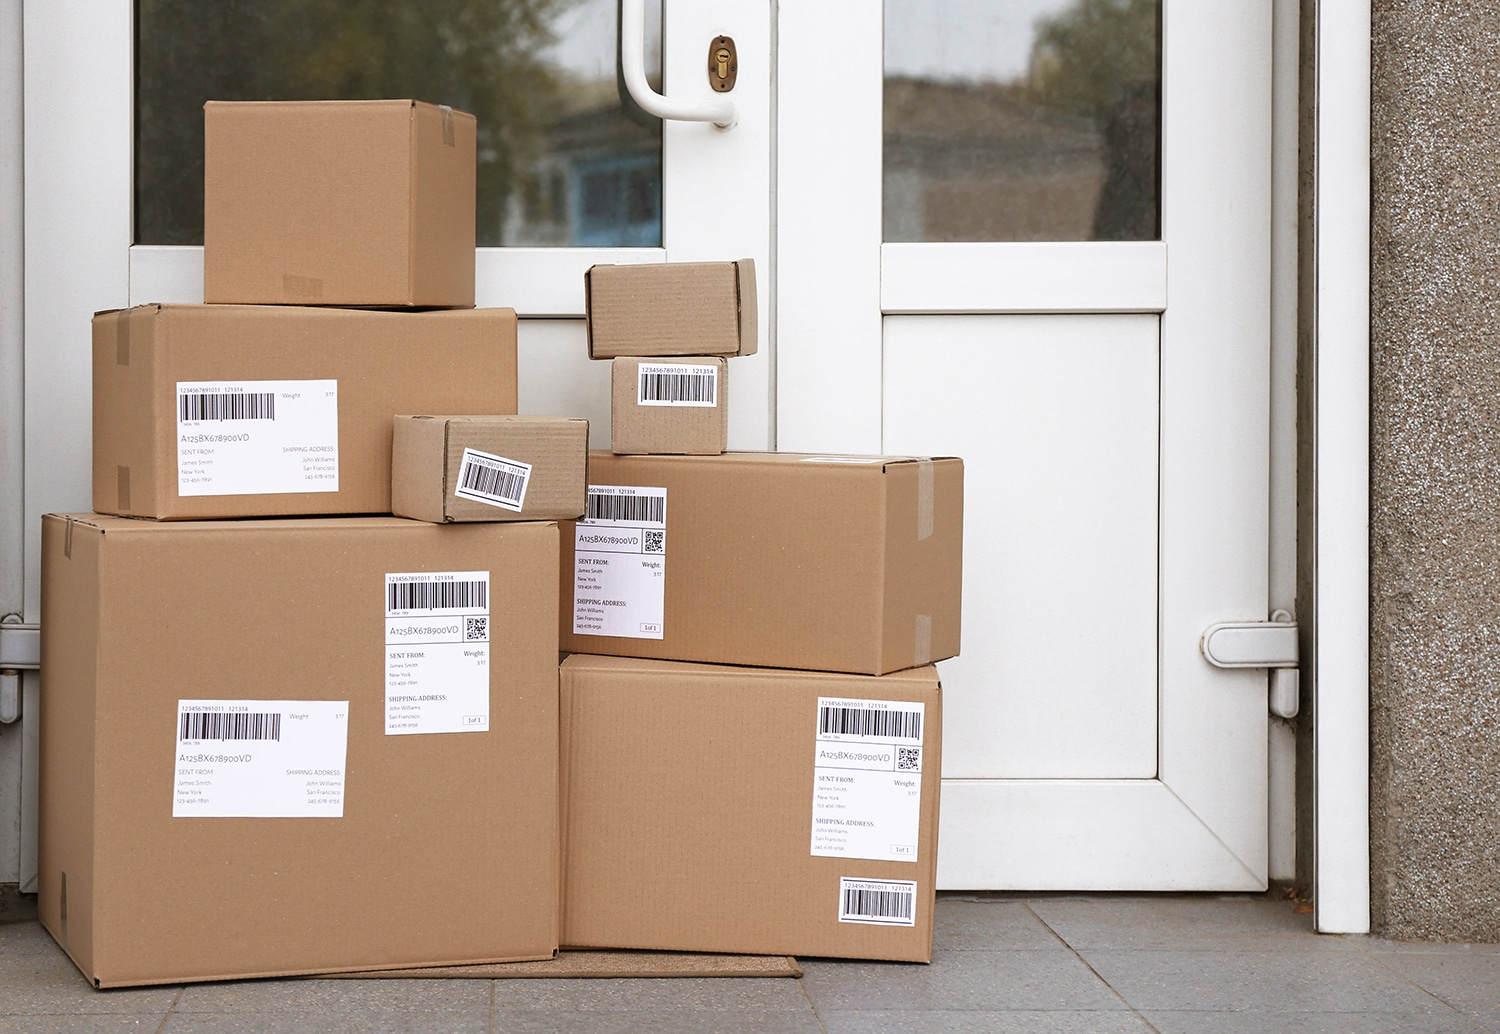 Delivered packages boxes on front porch